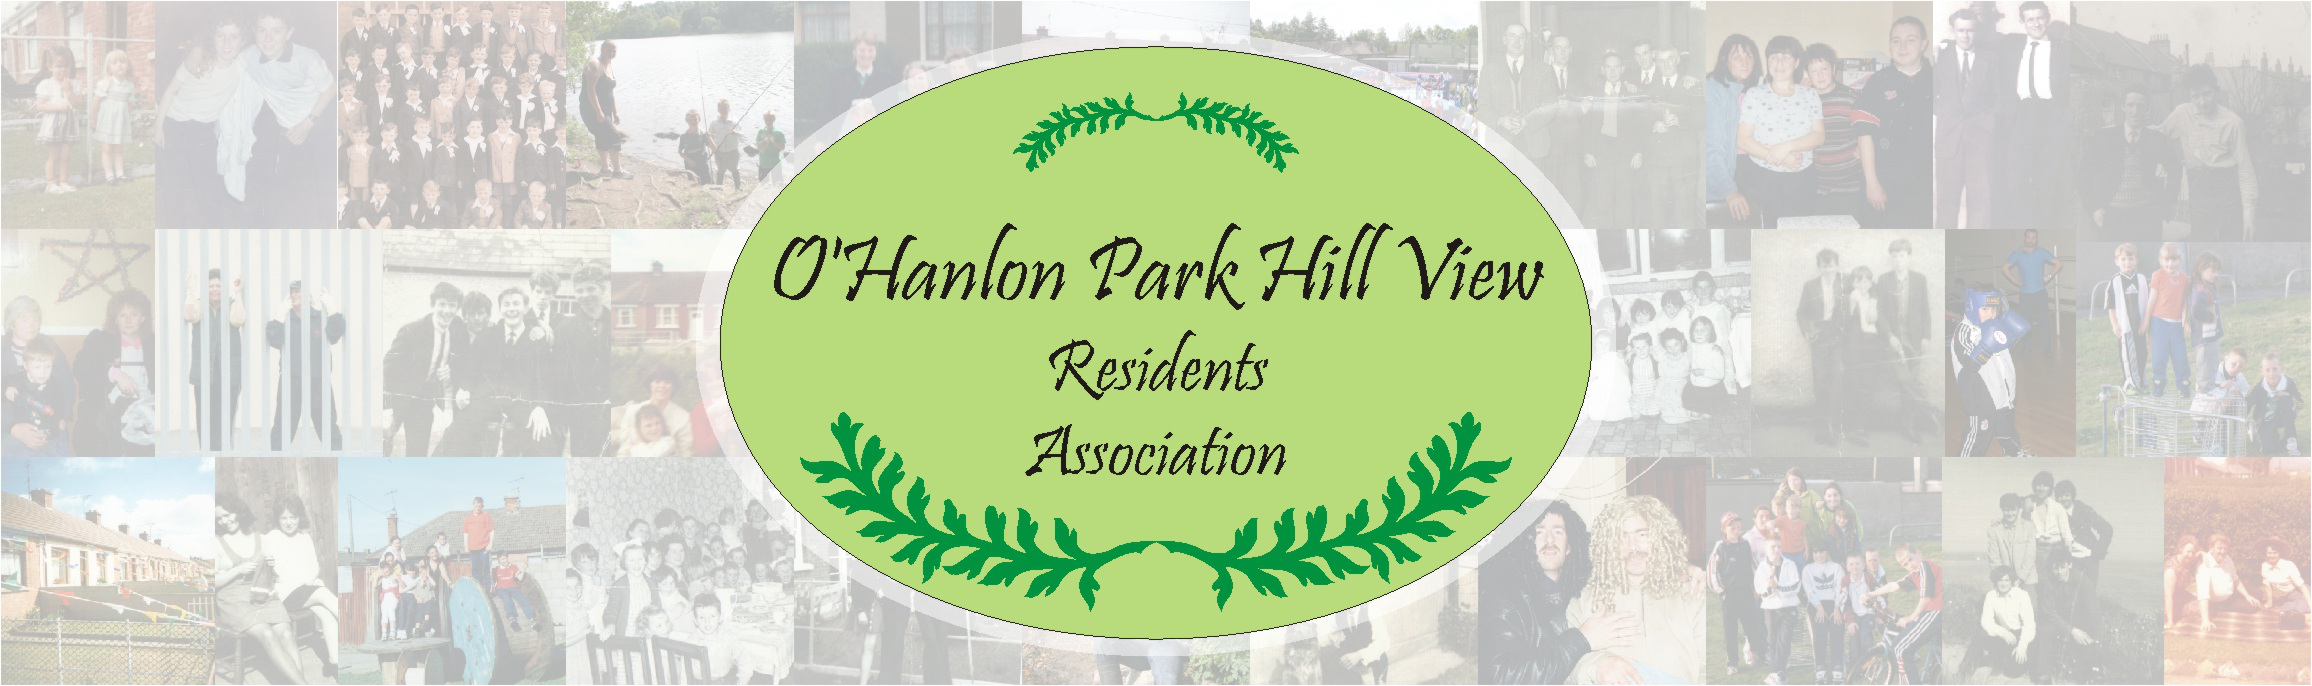 O' Hanlon Park Hill View Resident's Association